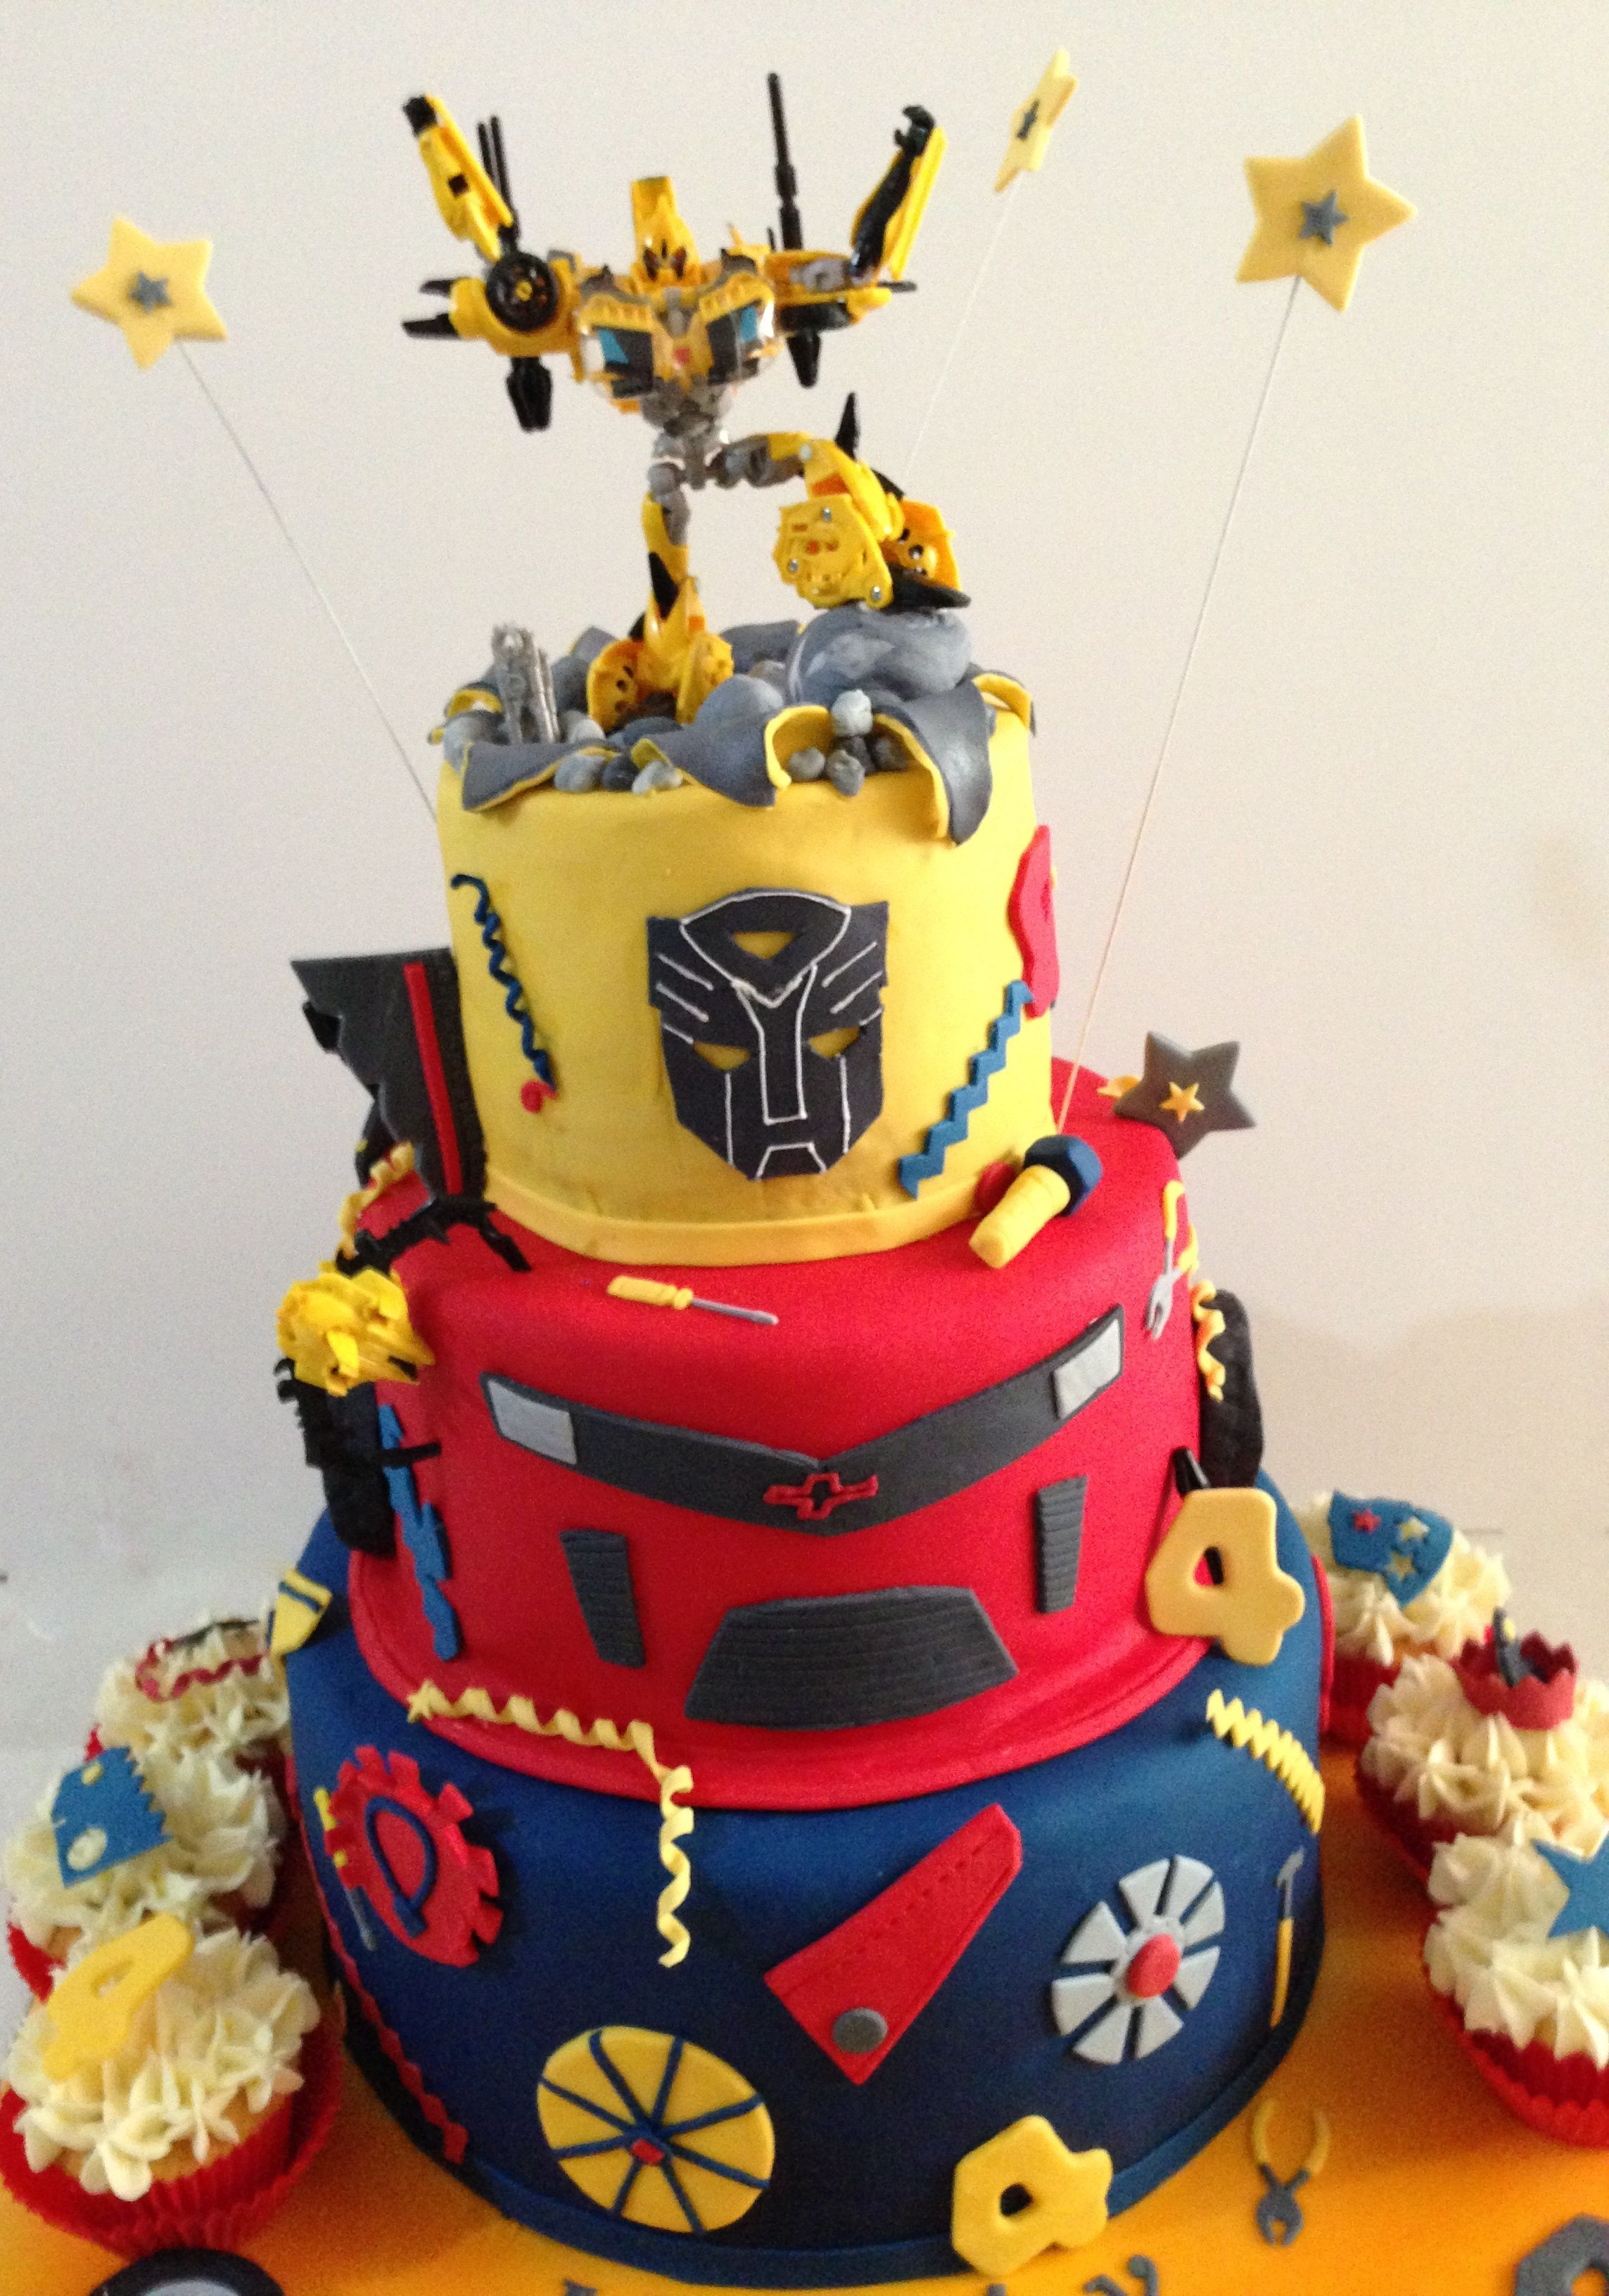 Phenomenal Transformer Birthday Cake With Images Transformers Birthday Funny Birthday Cards Online Alyptdamsfinfo